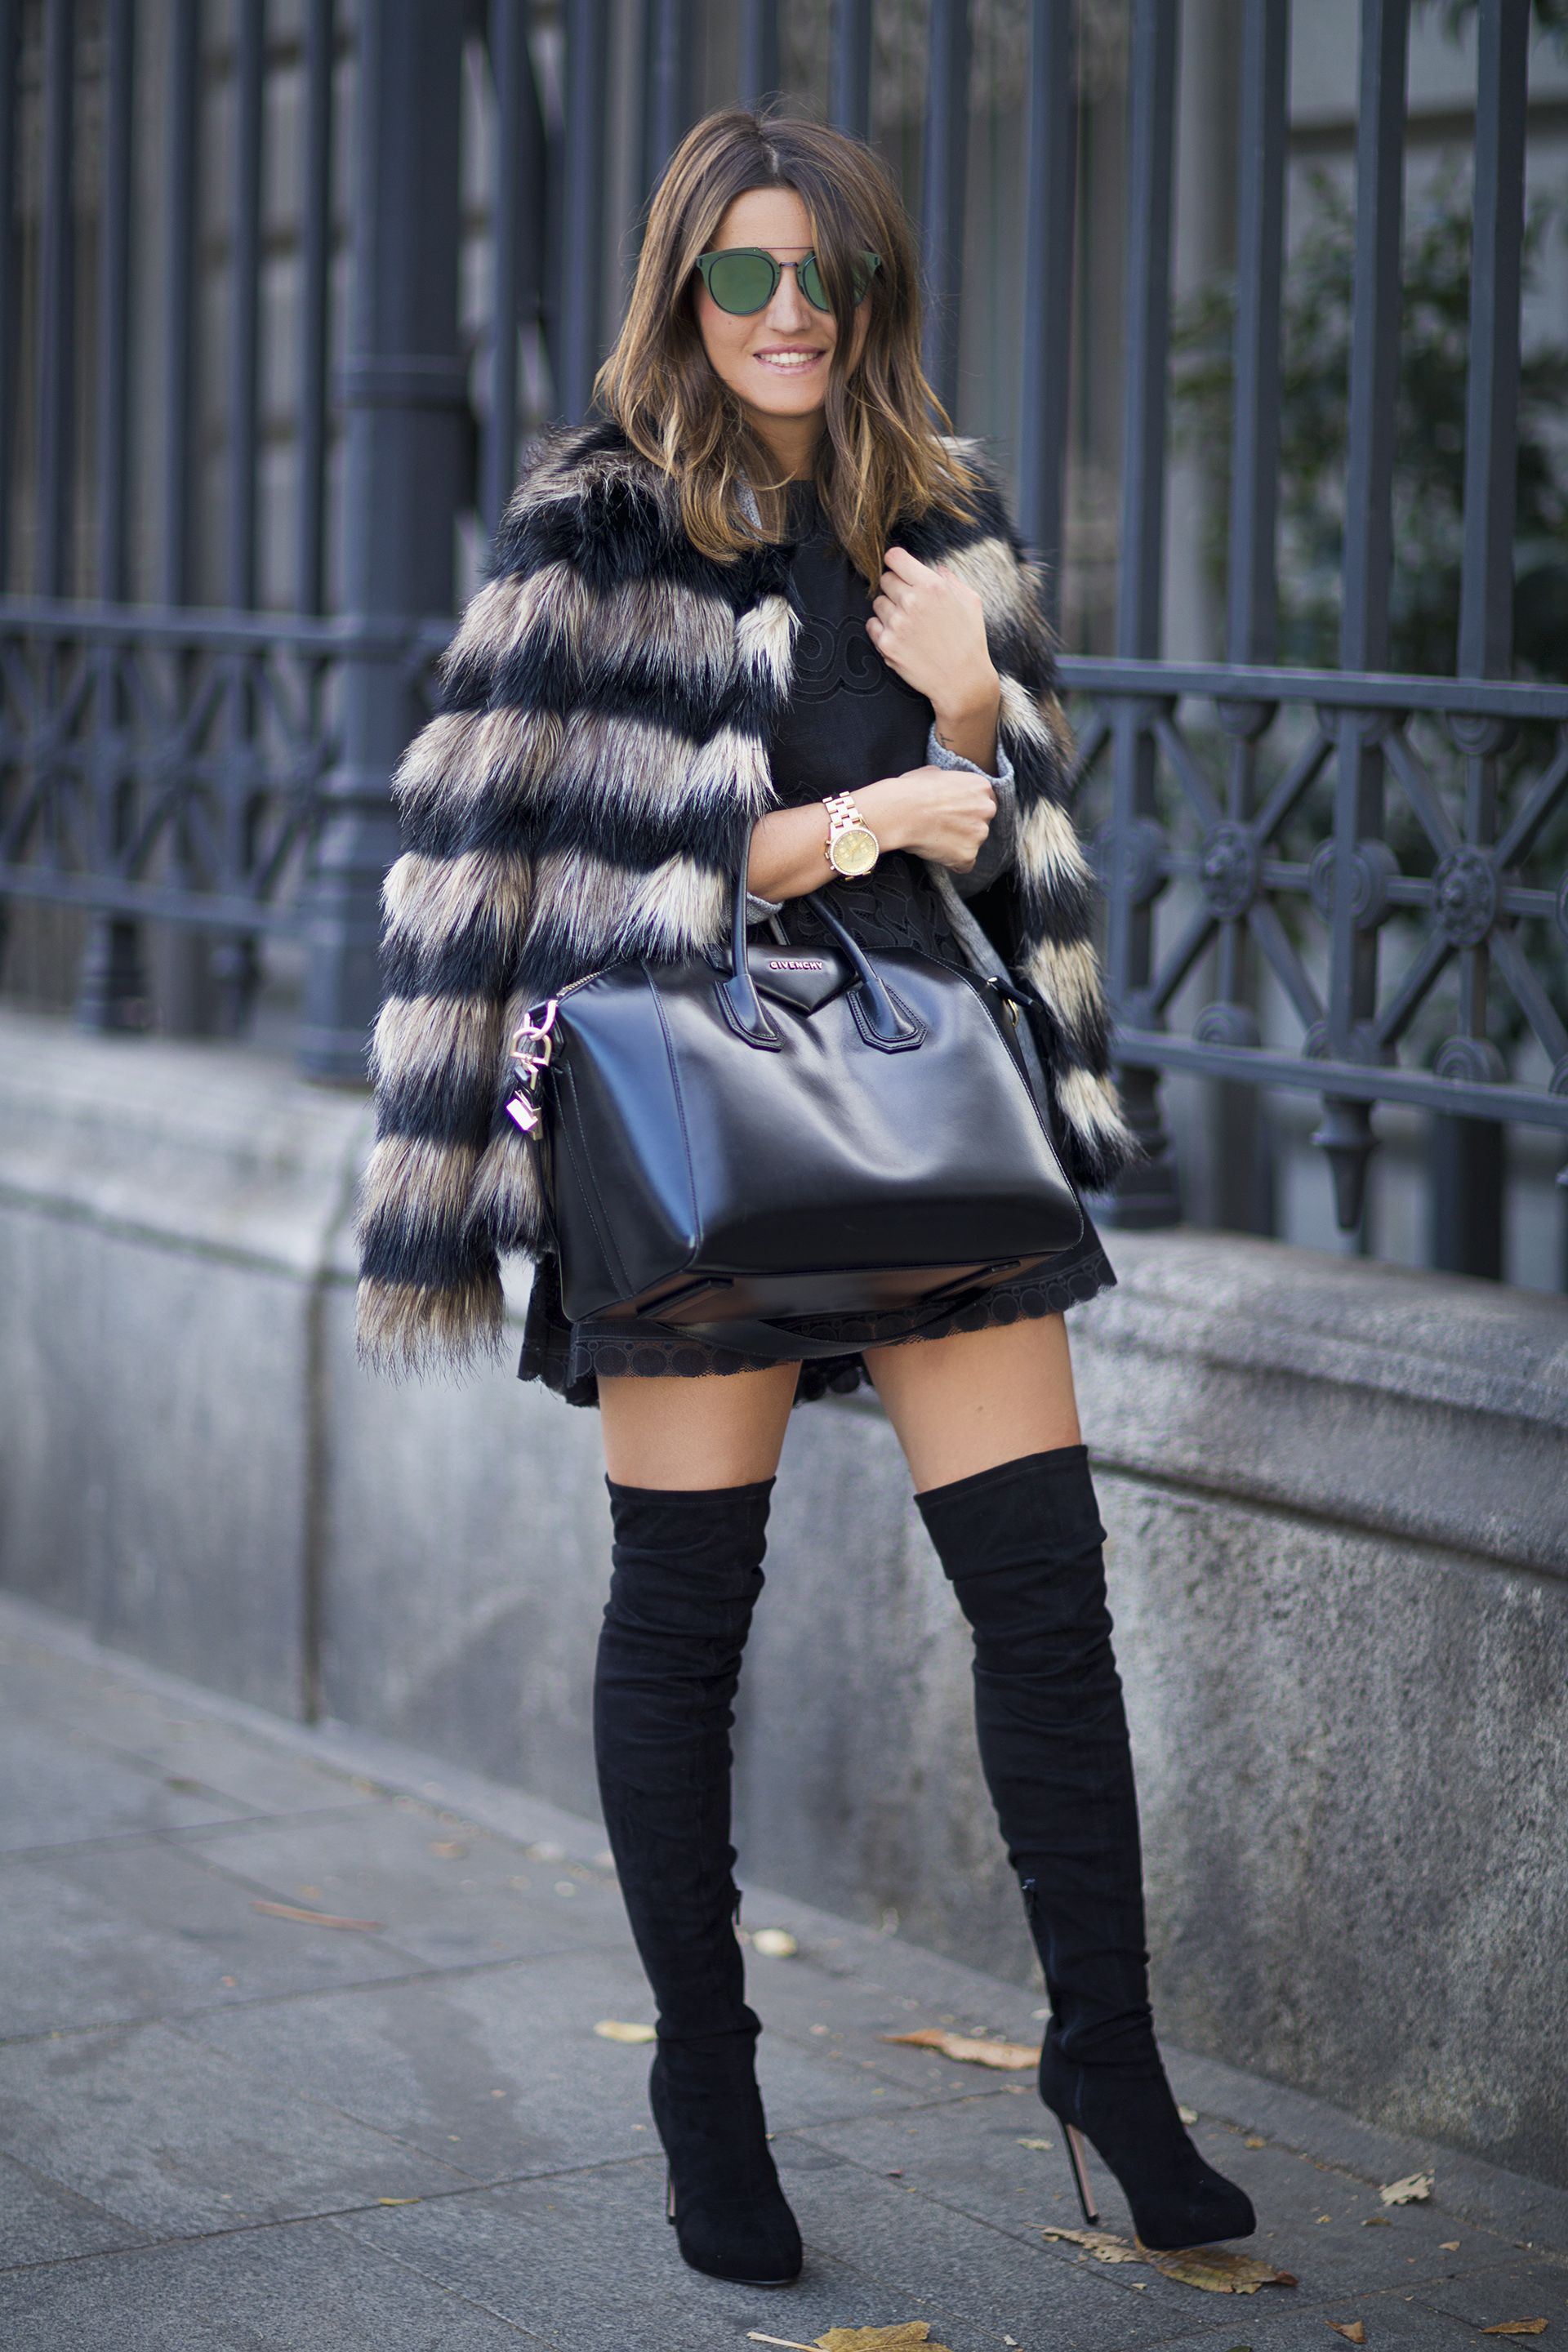 Adorable outfit. Thigh high boots, fur coat, oversized bag.